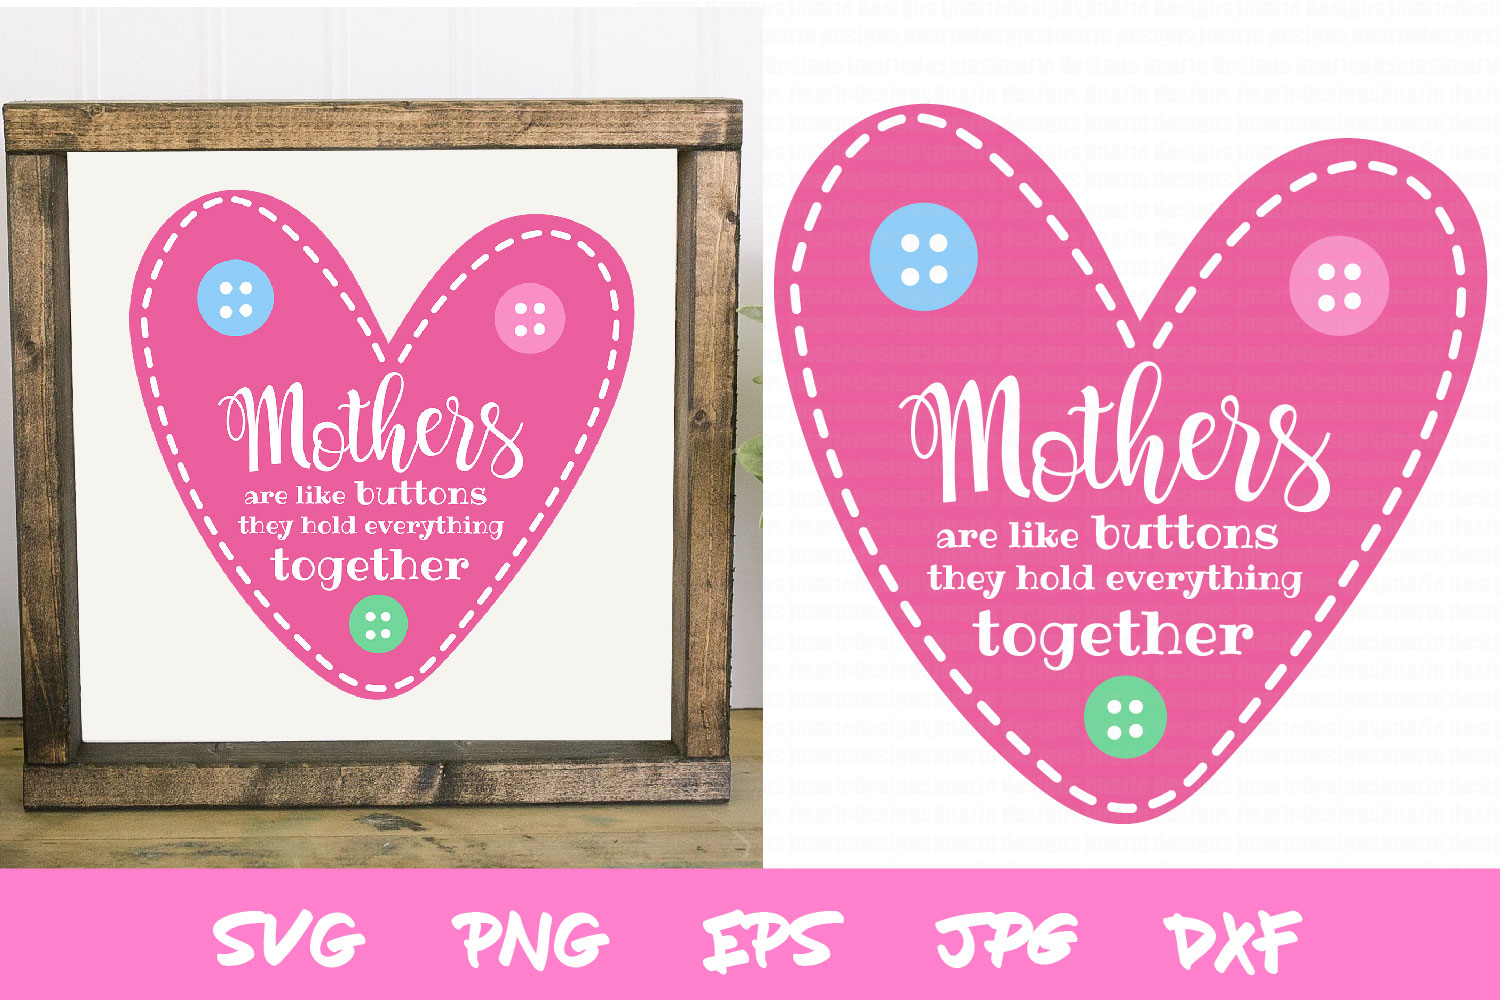 Mothers Day SVG, Mothers are like buttons quote example image 1